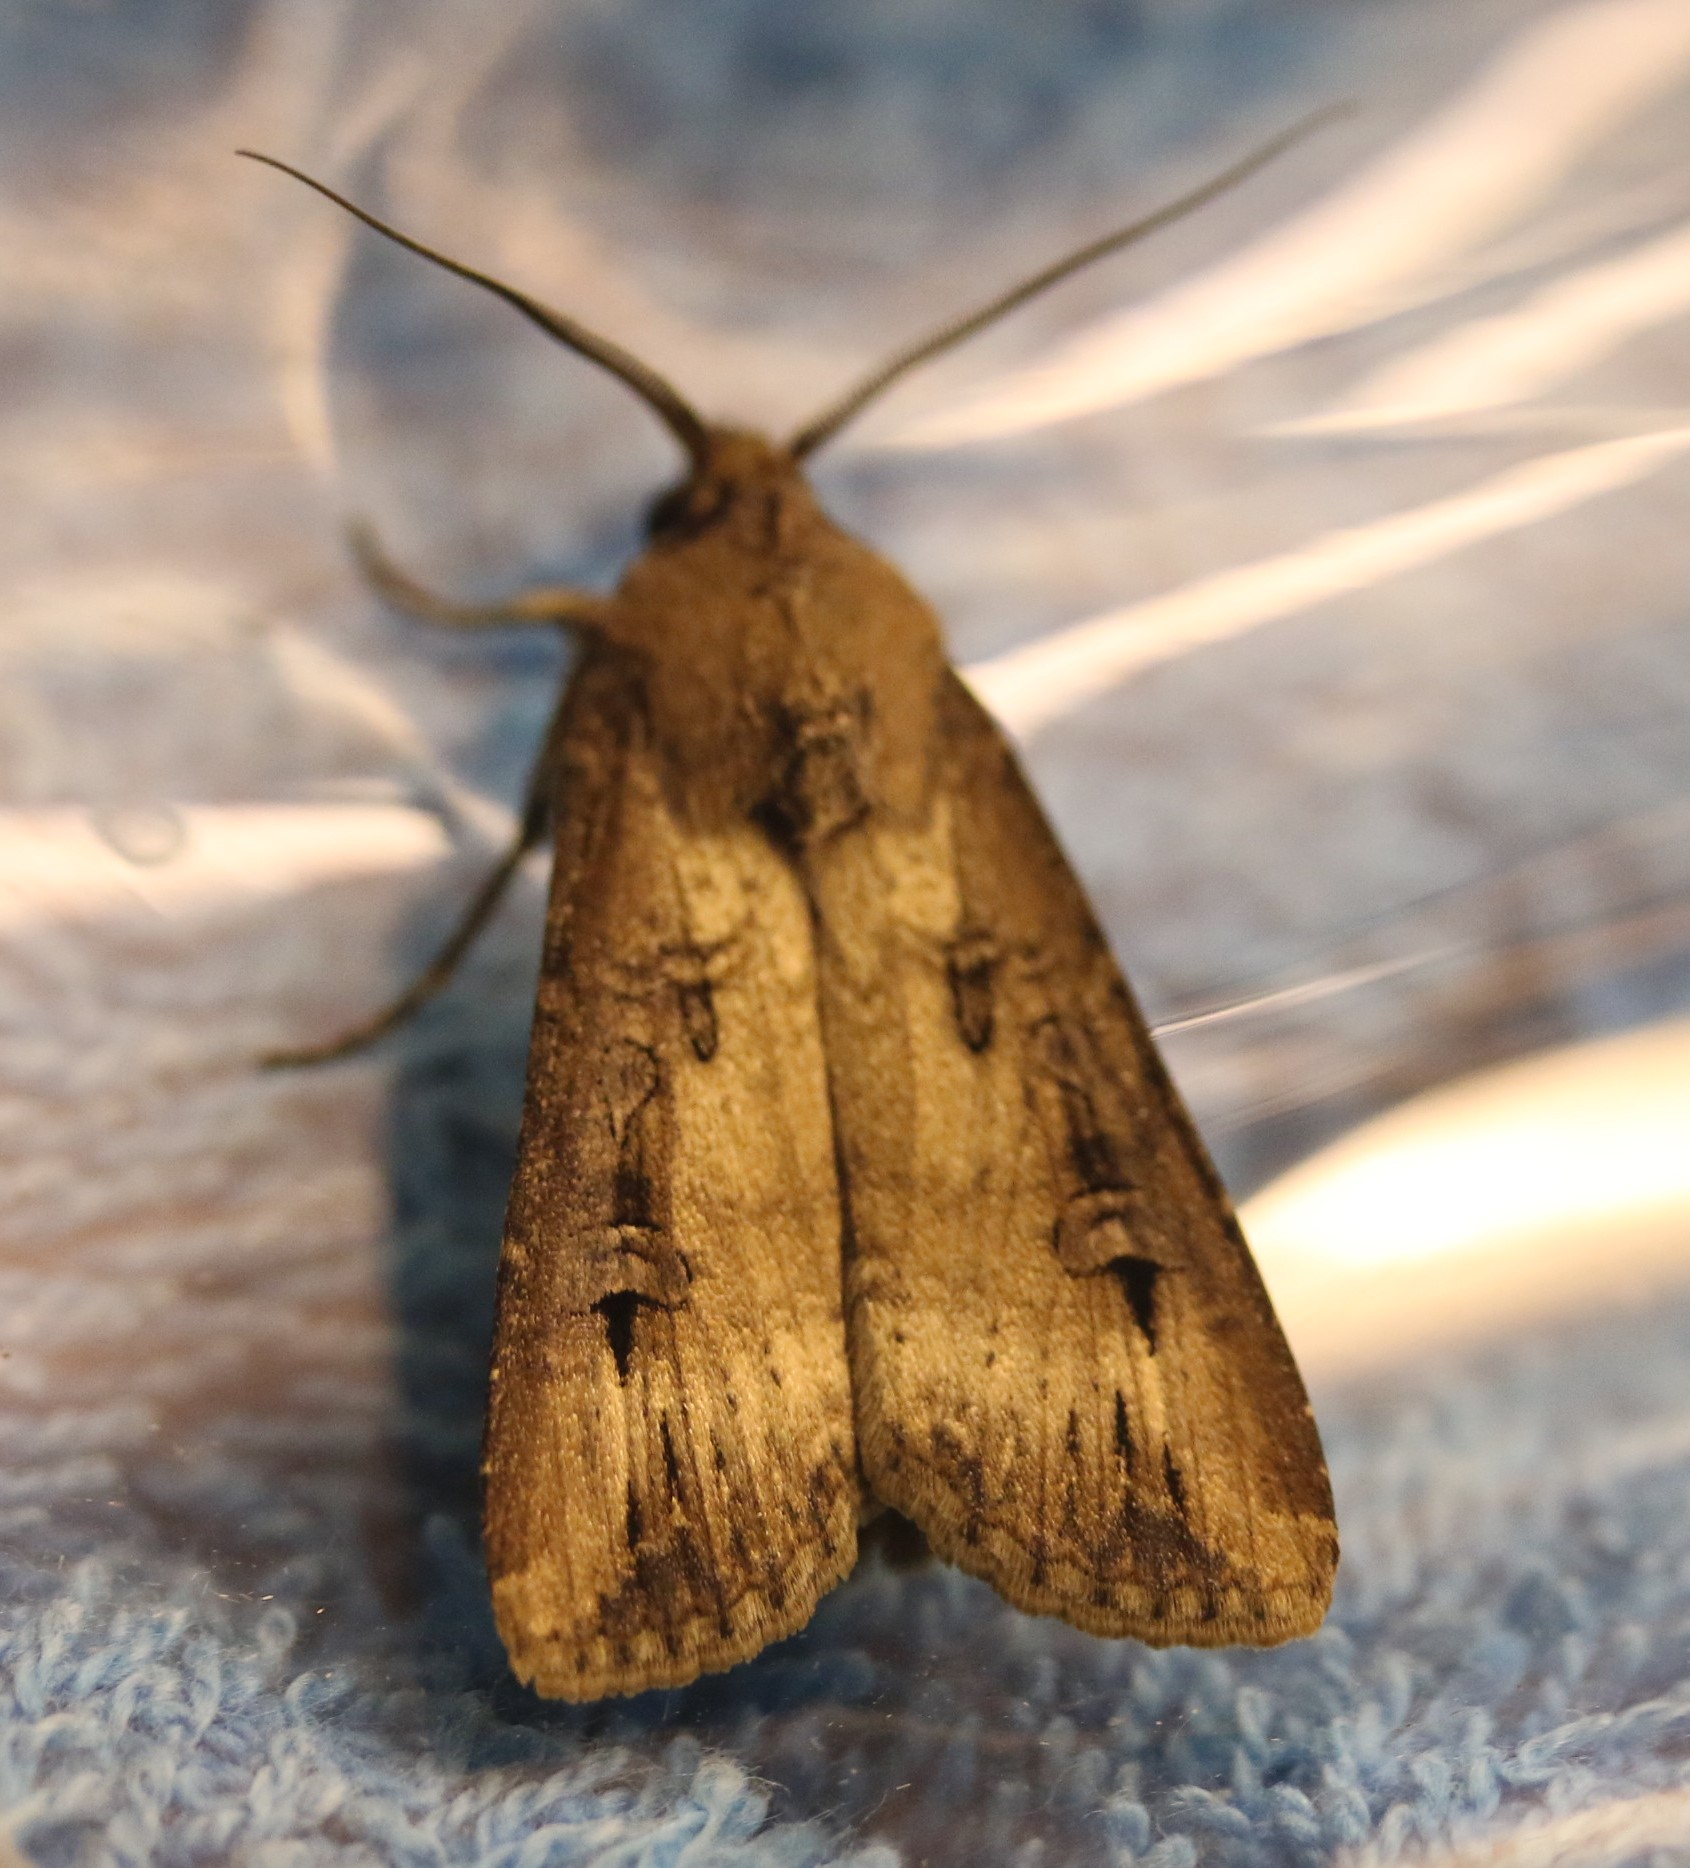 Agrotis ipsilon. Dark Sword-grass.